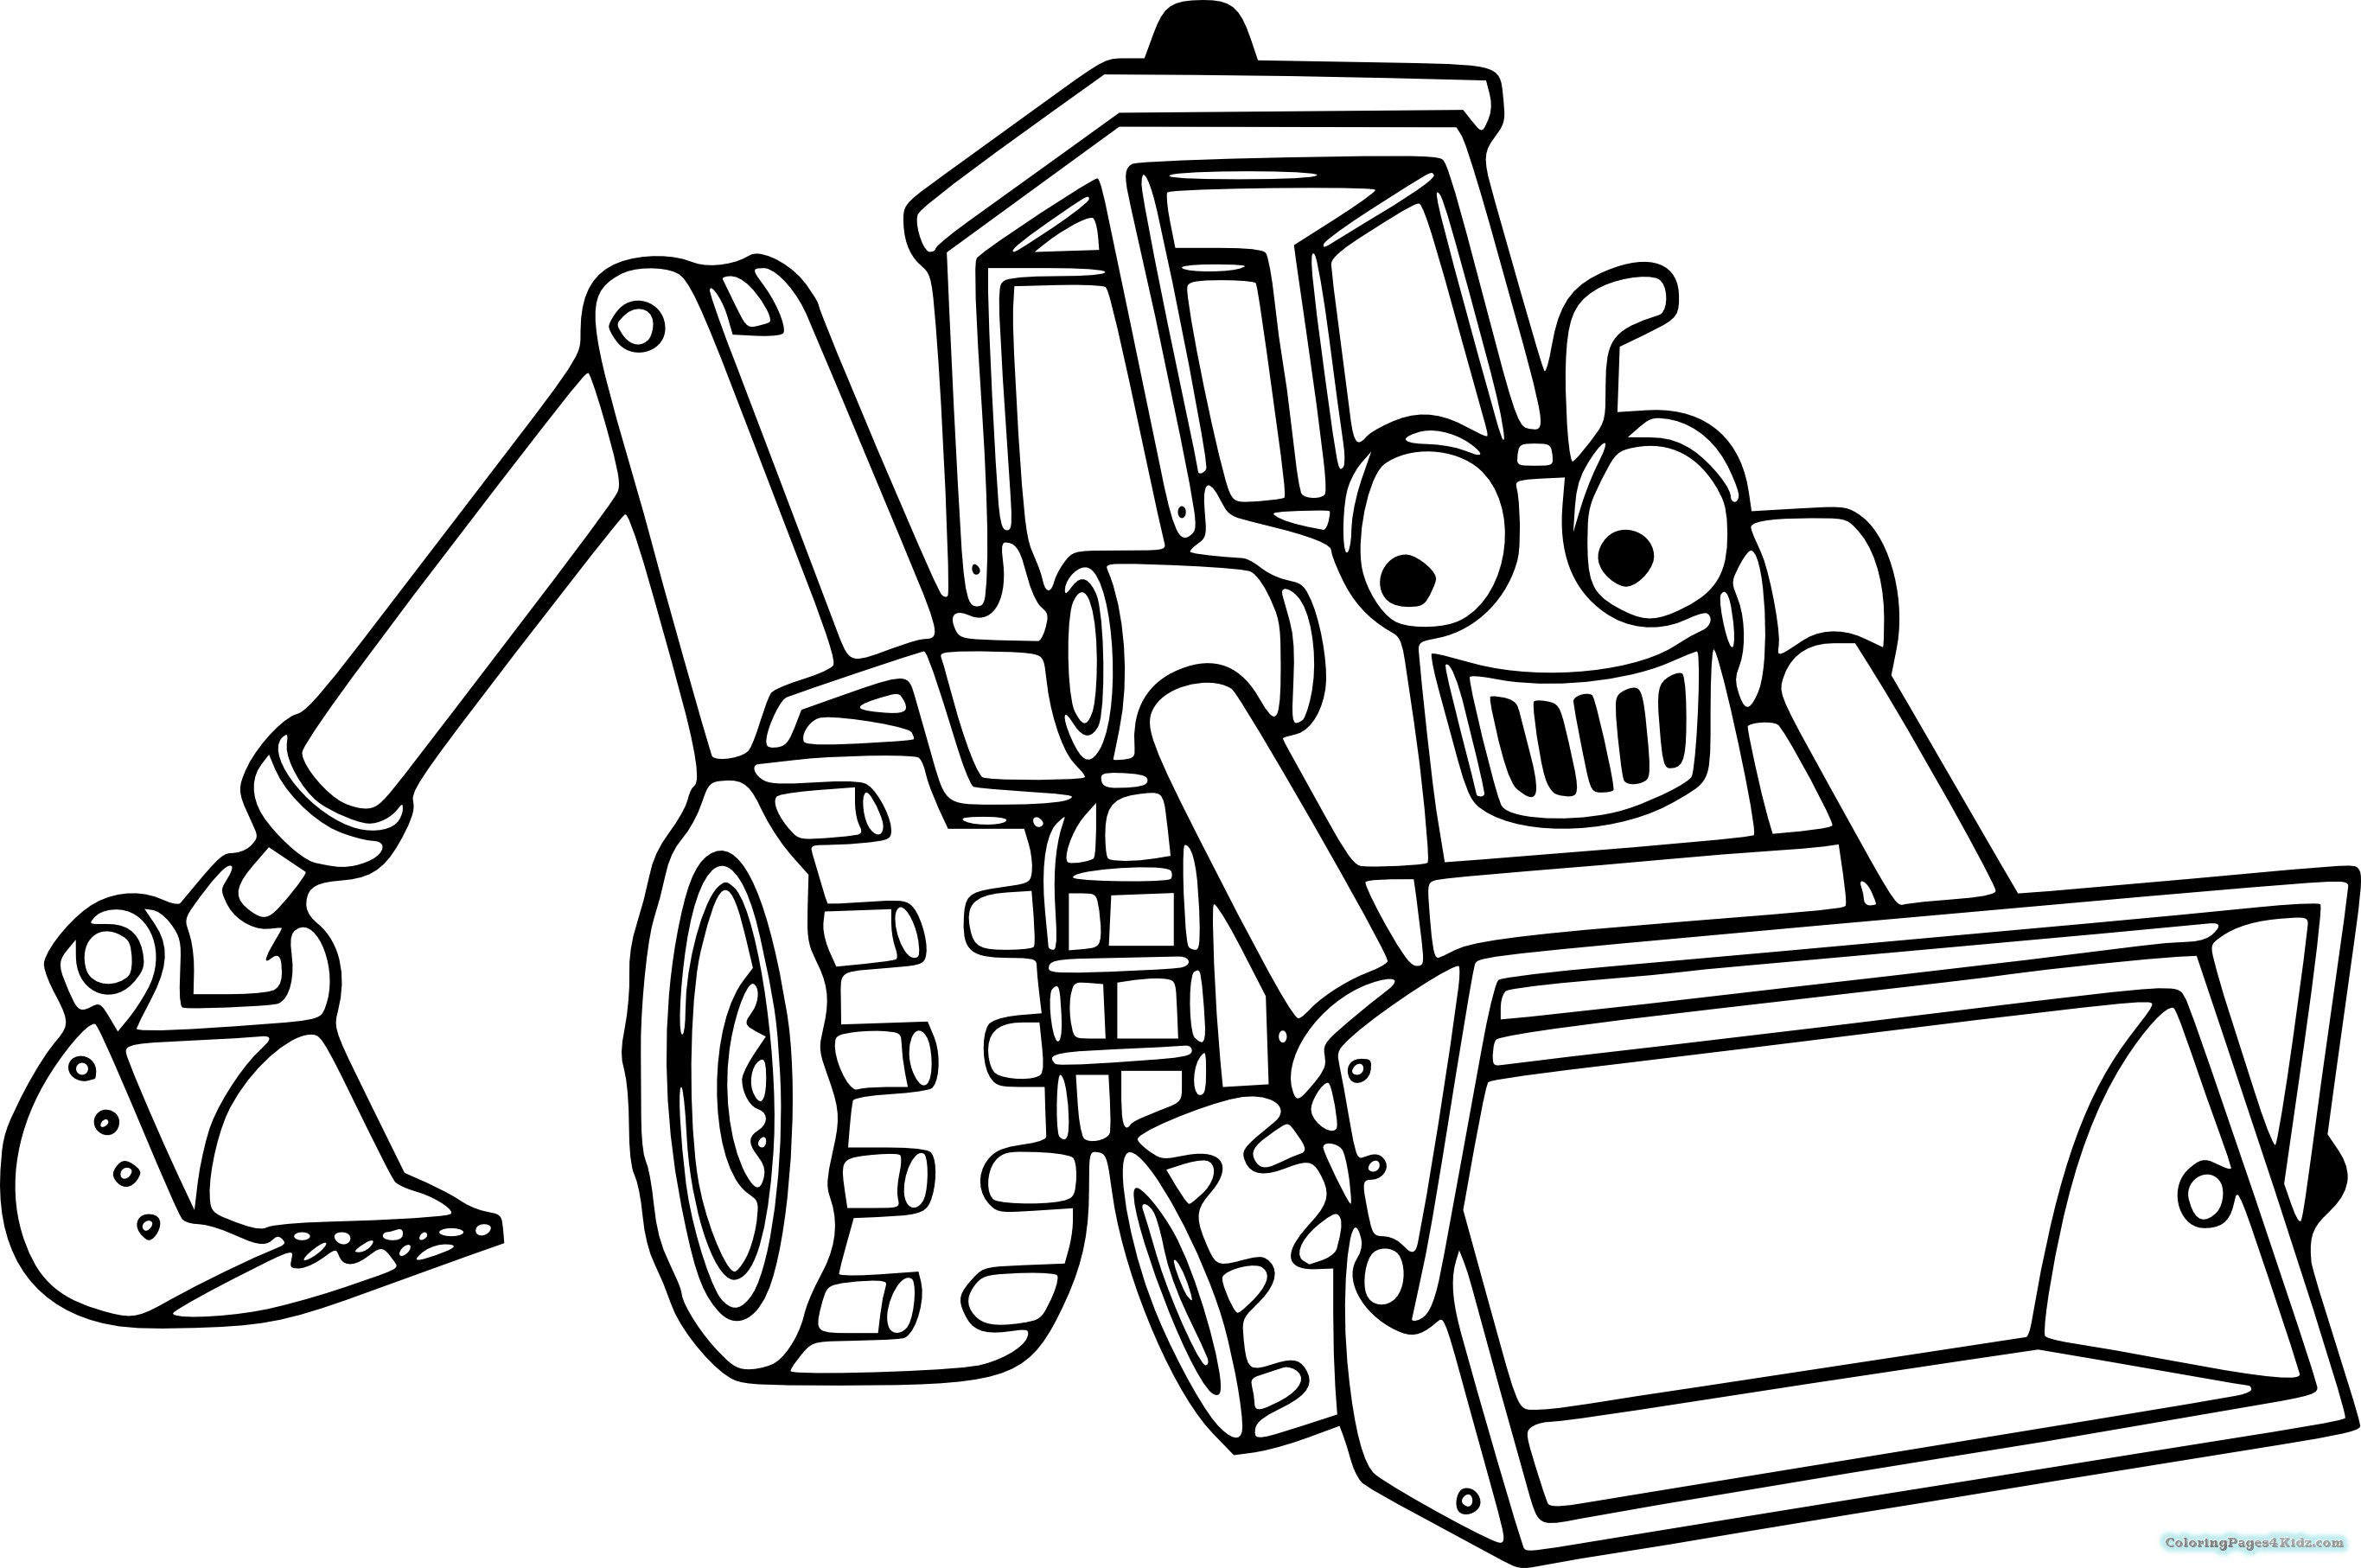 Tractor pictures to colour in